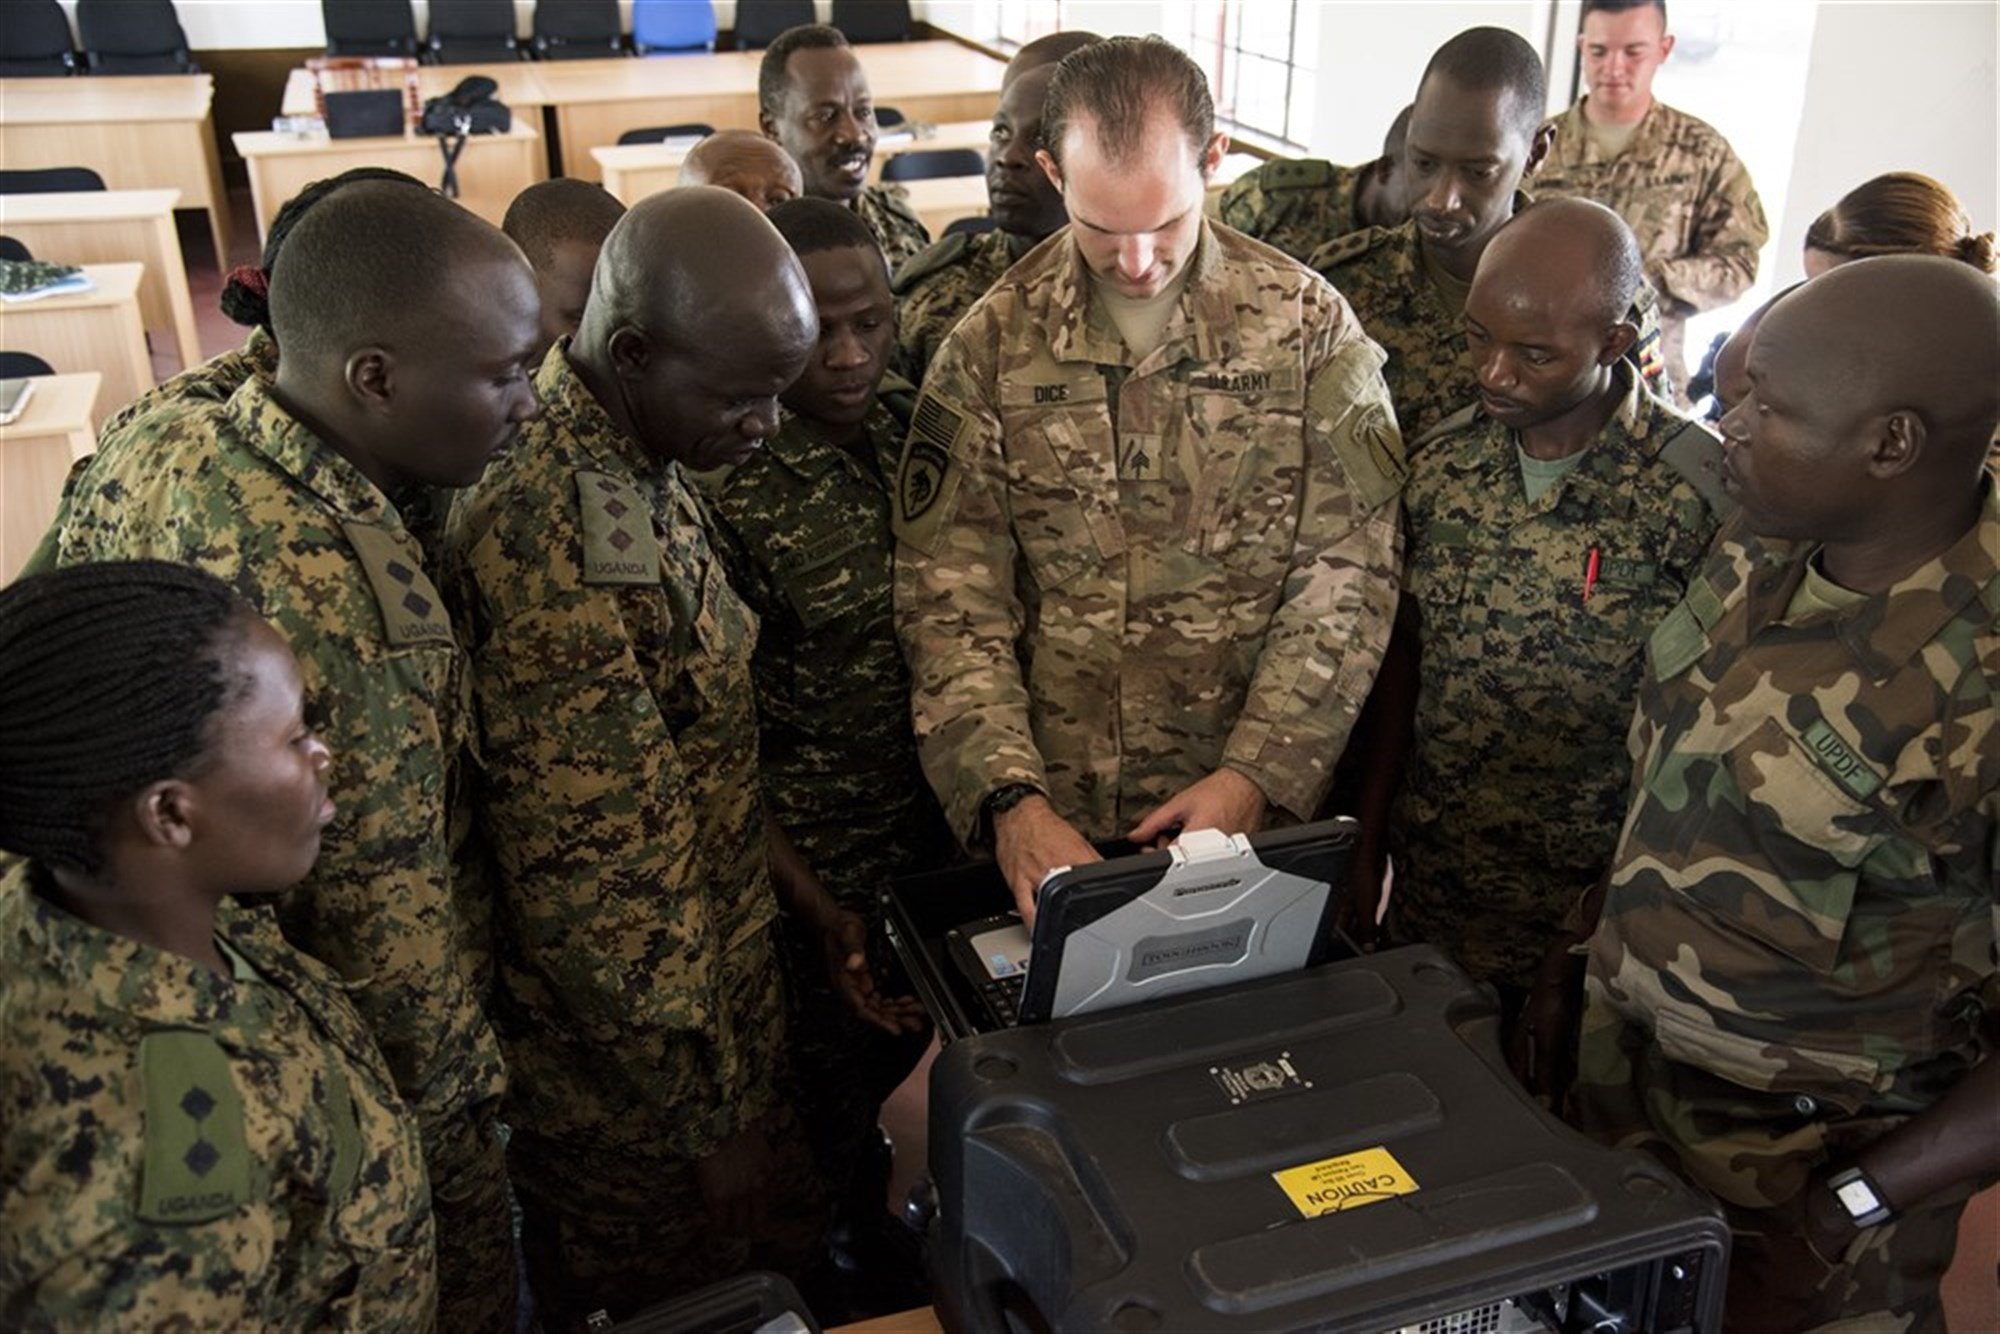 U.S. Army Sgt. Zechariah Dice, information operations course instructor, shows Uganda People's Defense Force (UPDF) personnel how to use a tactical transmitter system during an information operations course at Jinja, Uganda, recently. Its use was part of a course designed to help the UPDF develop their ability to plan and disseminate information to civilians and violent extremist organizations to inform and reduce the need for force. (U.S. Air Force photo by Staff Sgt. Nathan Maysonet)